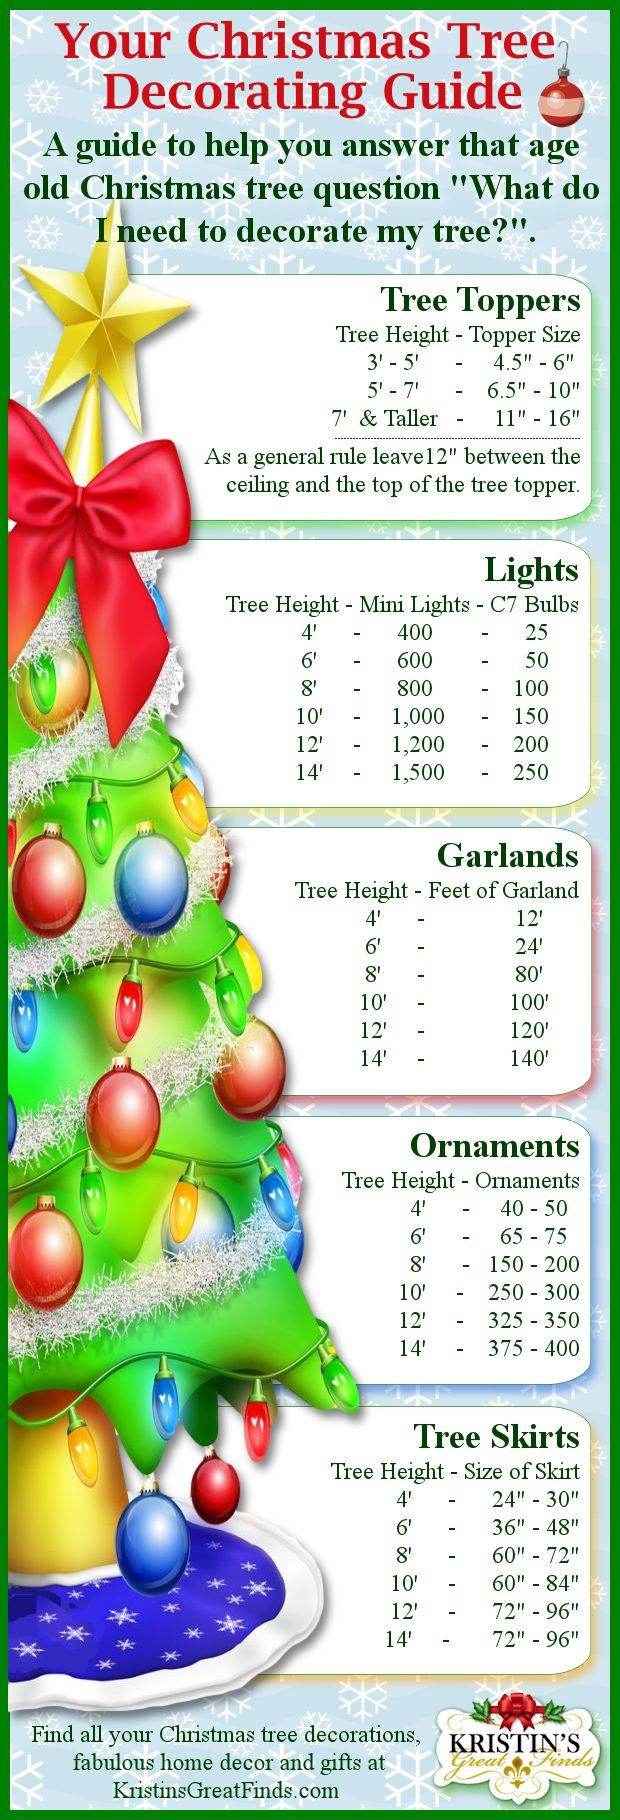 Now I won't have to guess how many ornaments, lights, garlands, etc to put on my Christmas tree. Great information to have especially when you have to go purchase new items or are putting up a new size tree. Do you put up a real or an artificial tree?